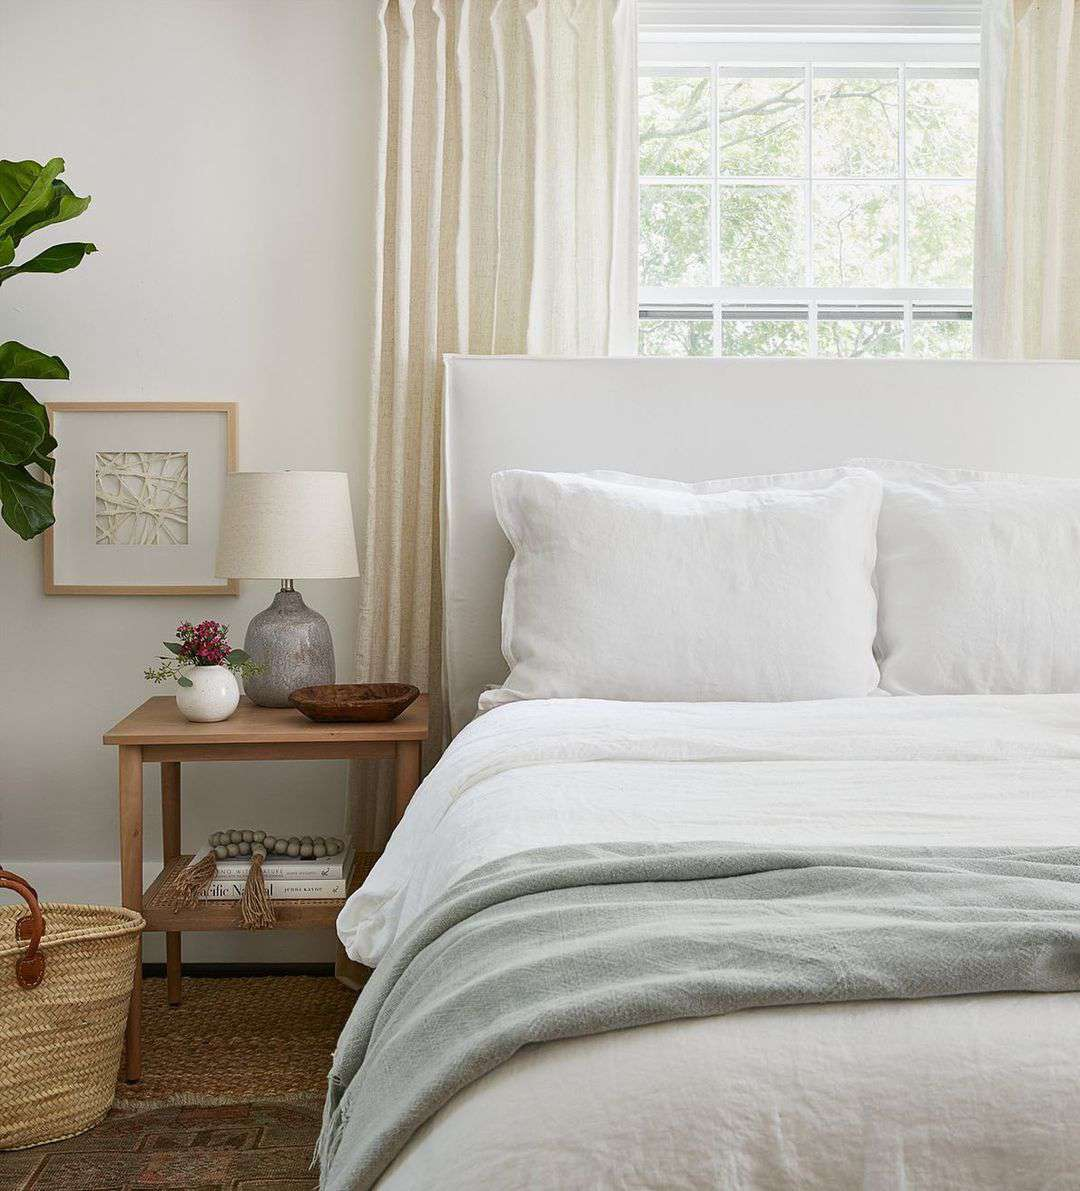 Soft neutral bedroom with sun coming through the window.